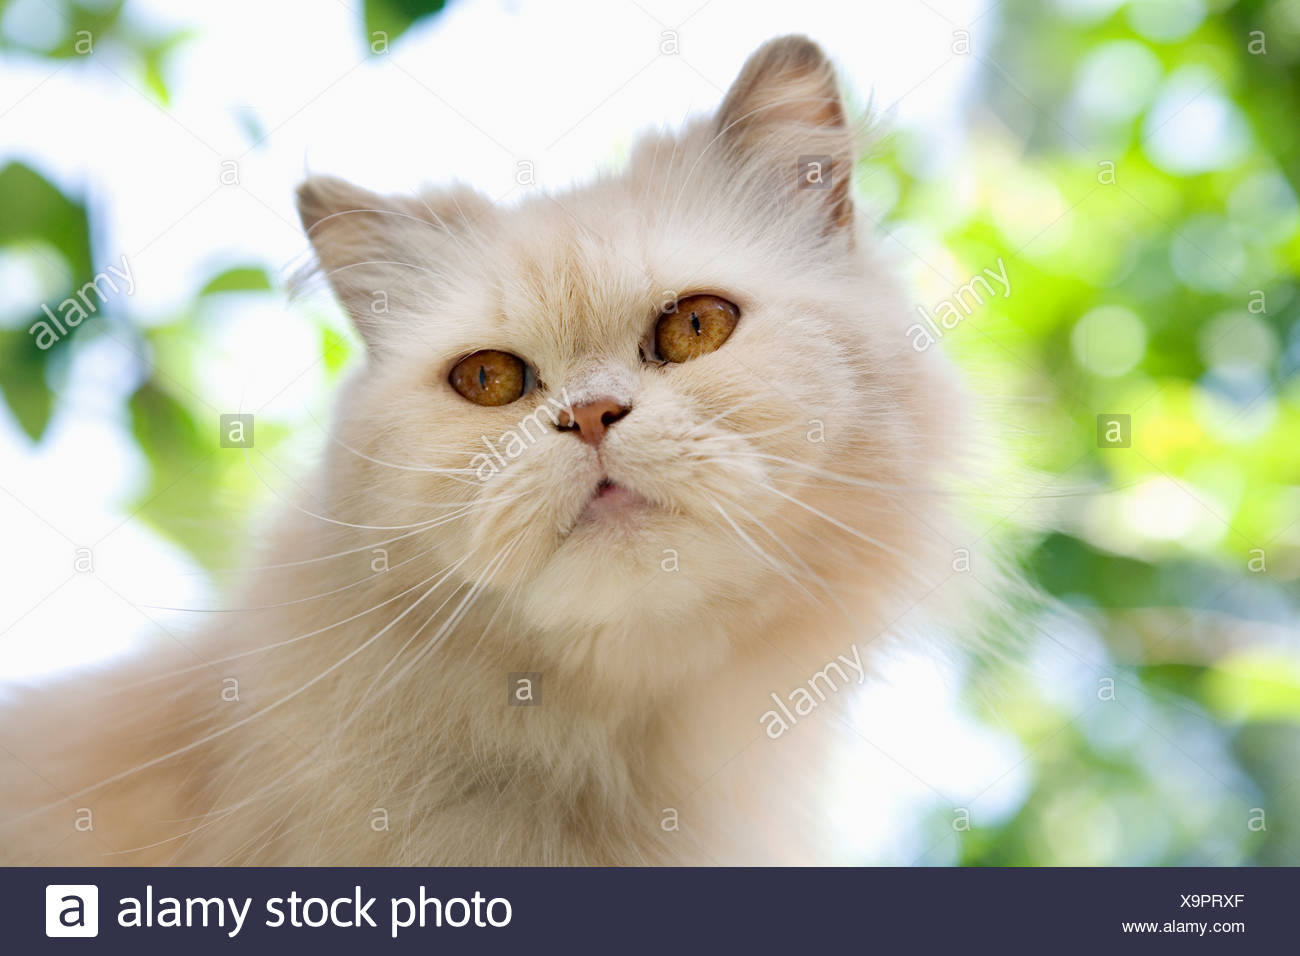 White cat outdoors - Stock Image